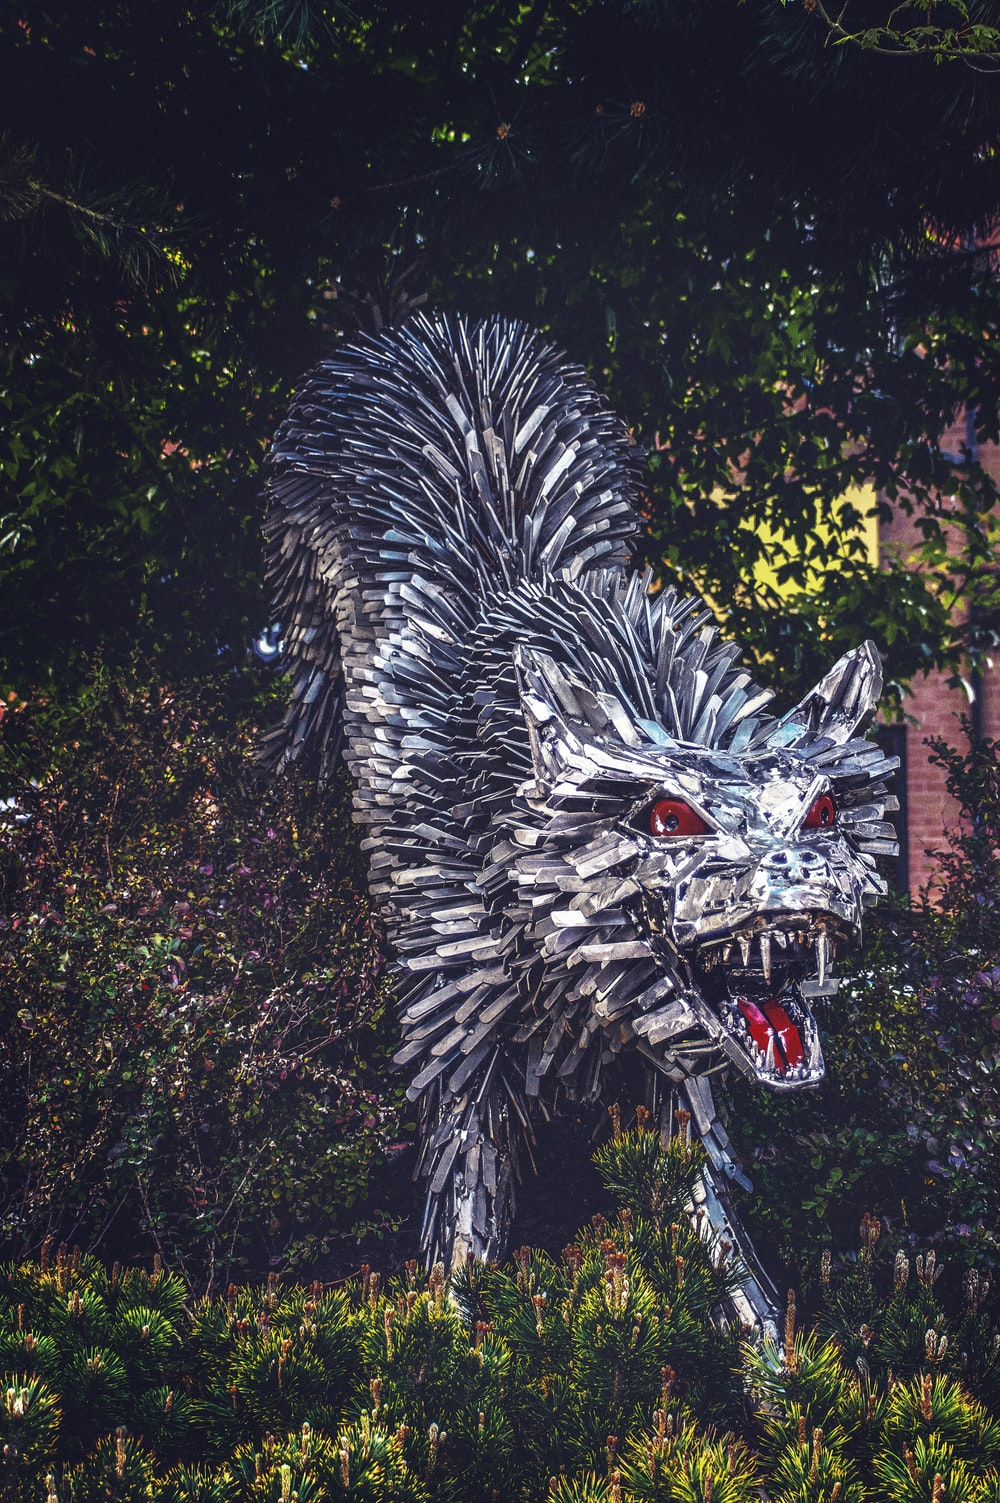 white wolf with red eyes statue